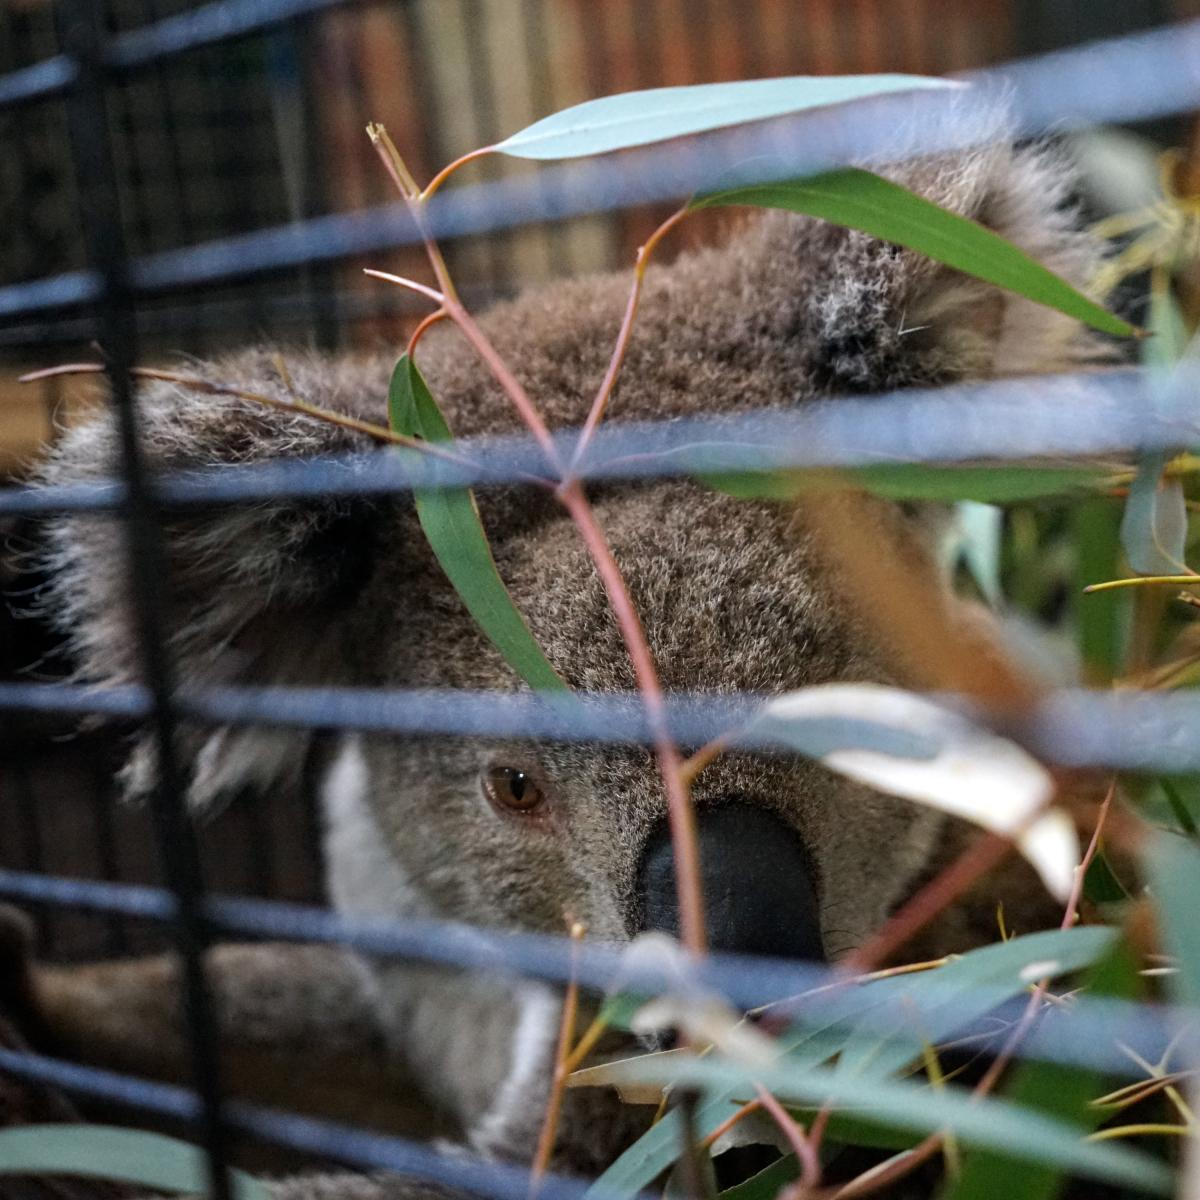 Rescued koalas are being held in captivity until they're in good health and can be released back in the wild. Many of the koalas that were brought in were starving and malnourished.